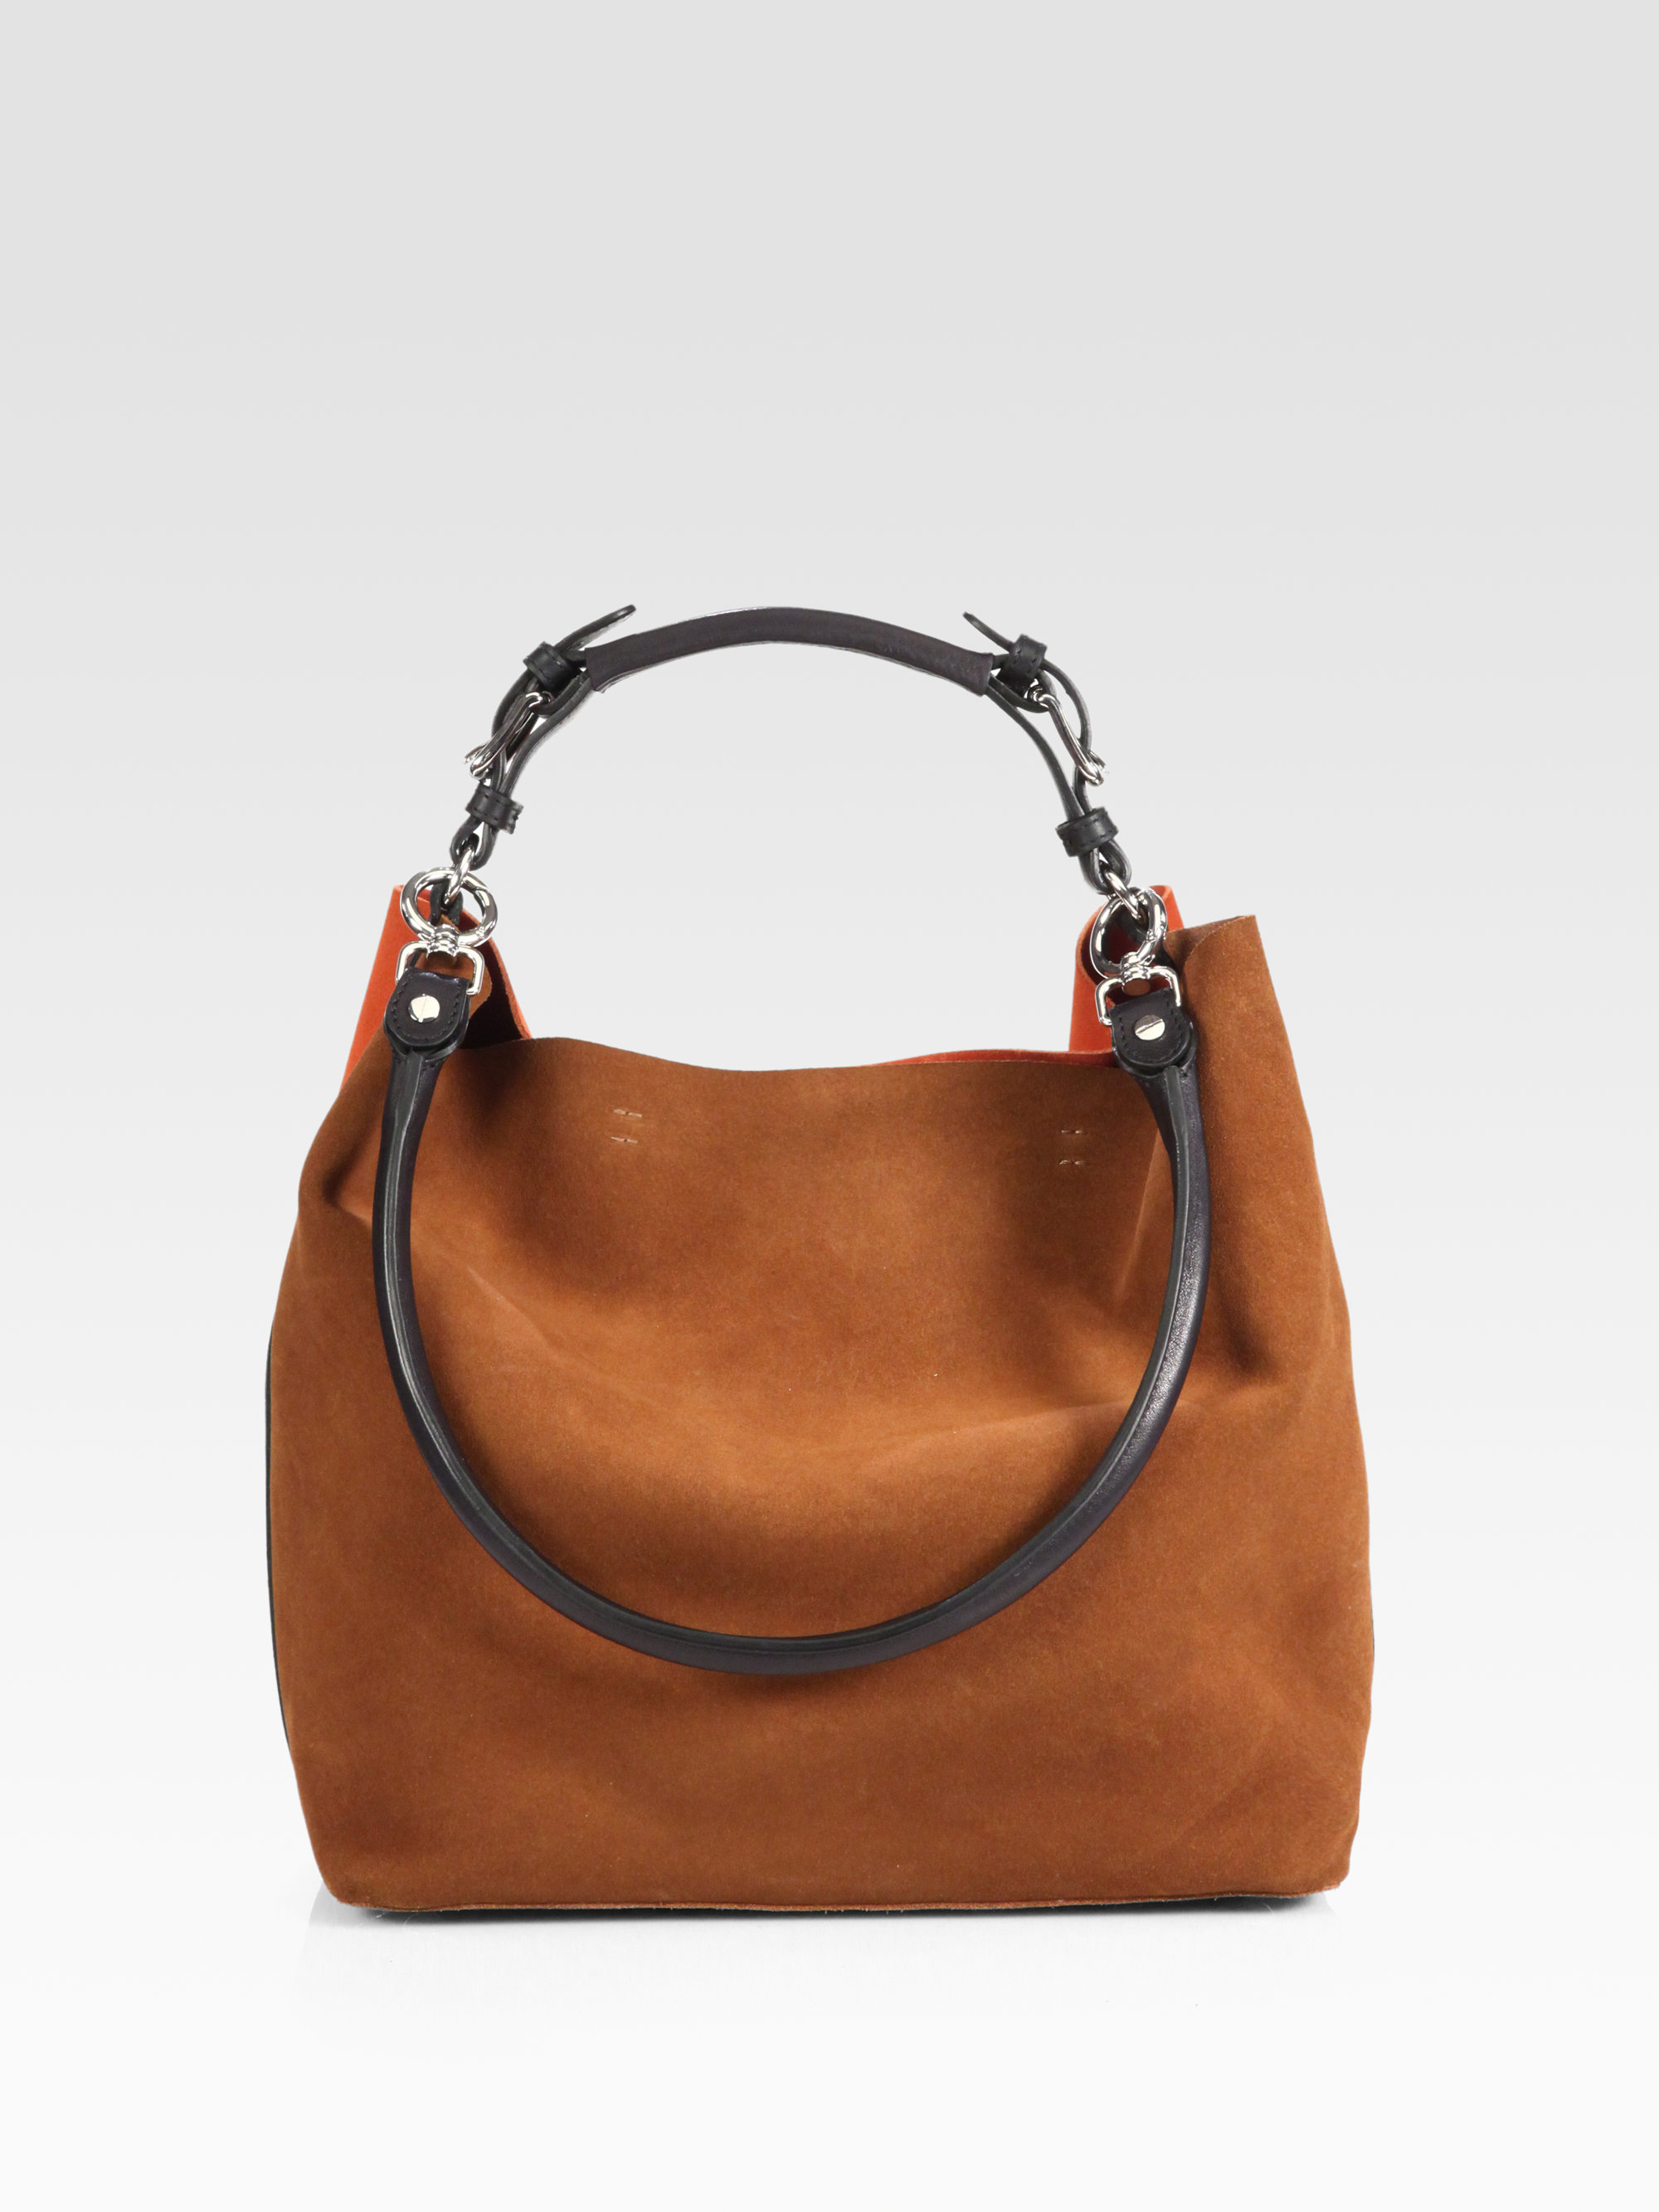 Marni Bicolor Suede Shoulder Bag in Brown | Lyst